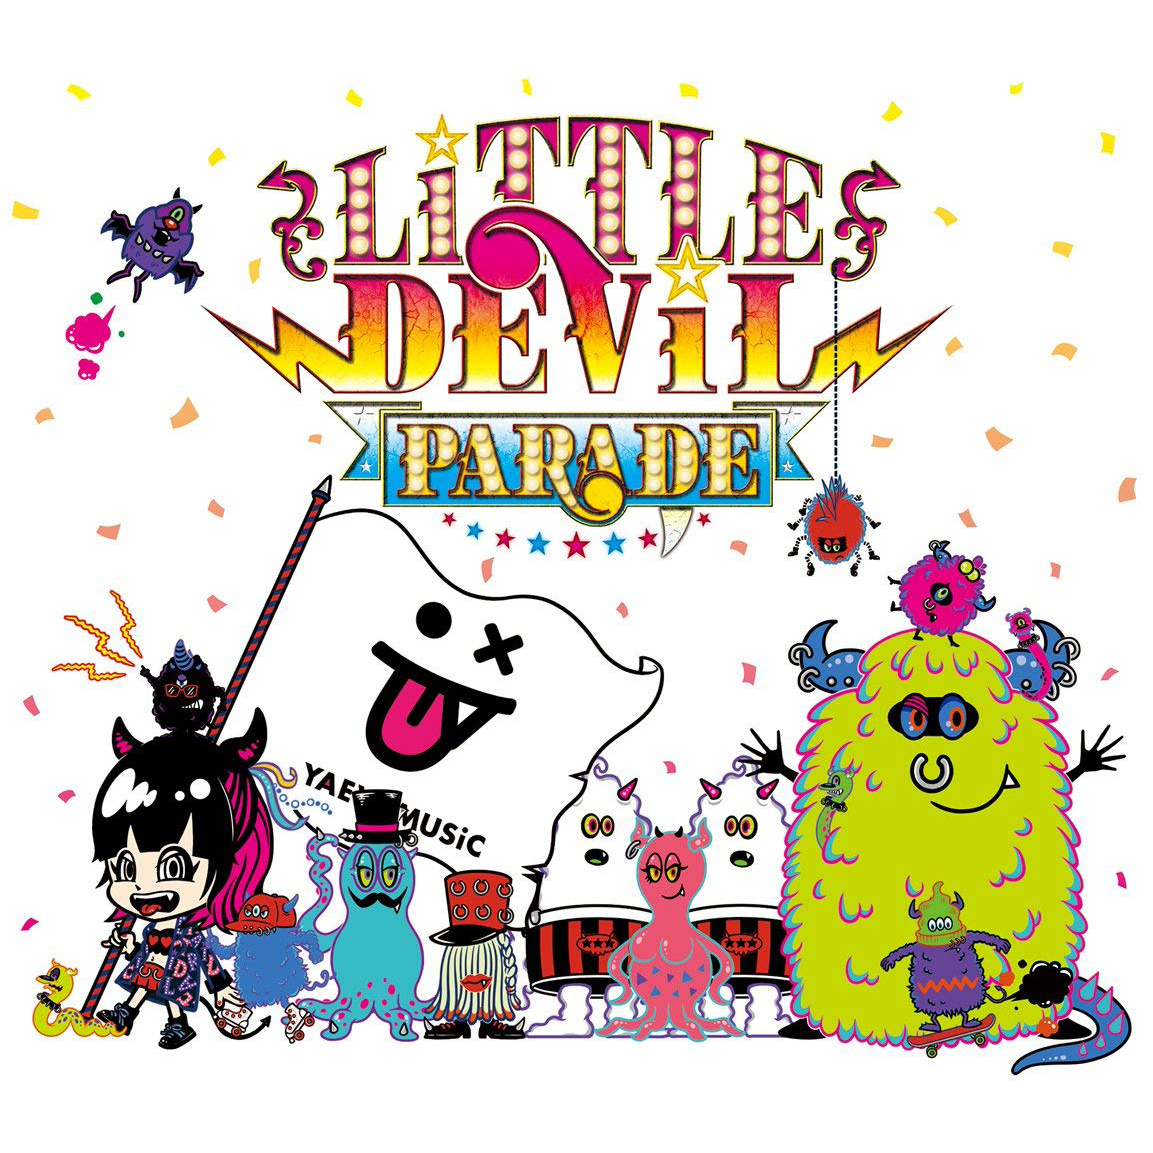 LiTTLE DEViL PARADE